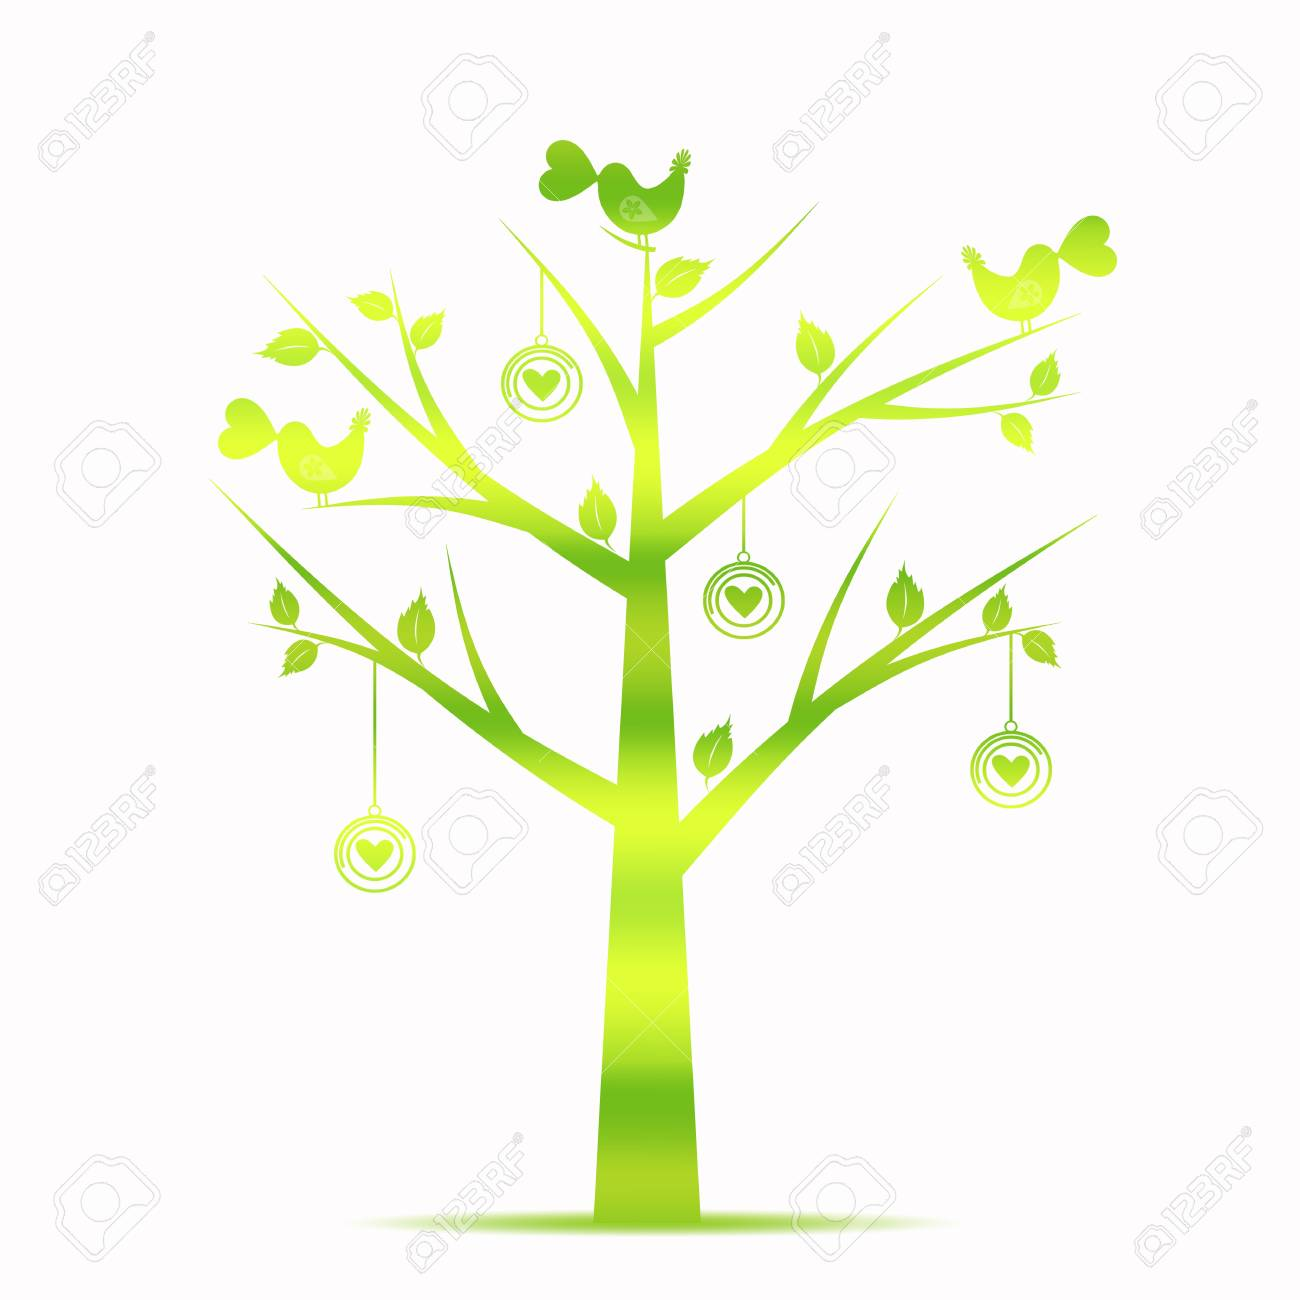 Beautiful Valentines Tree Isolated on White Background Stock Vector - 11960874